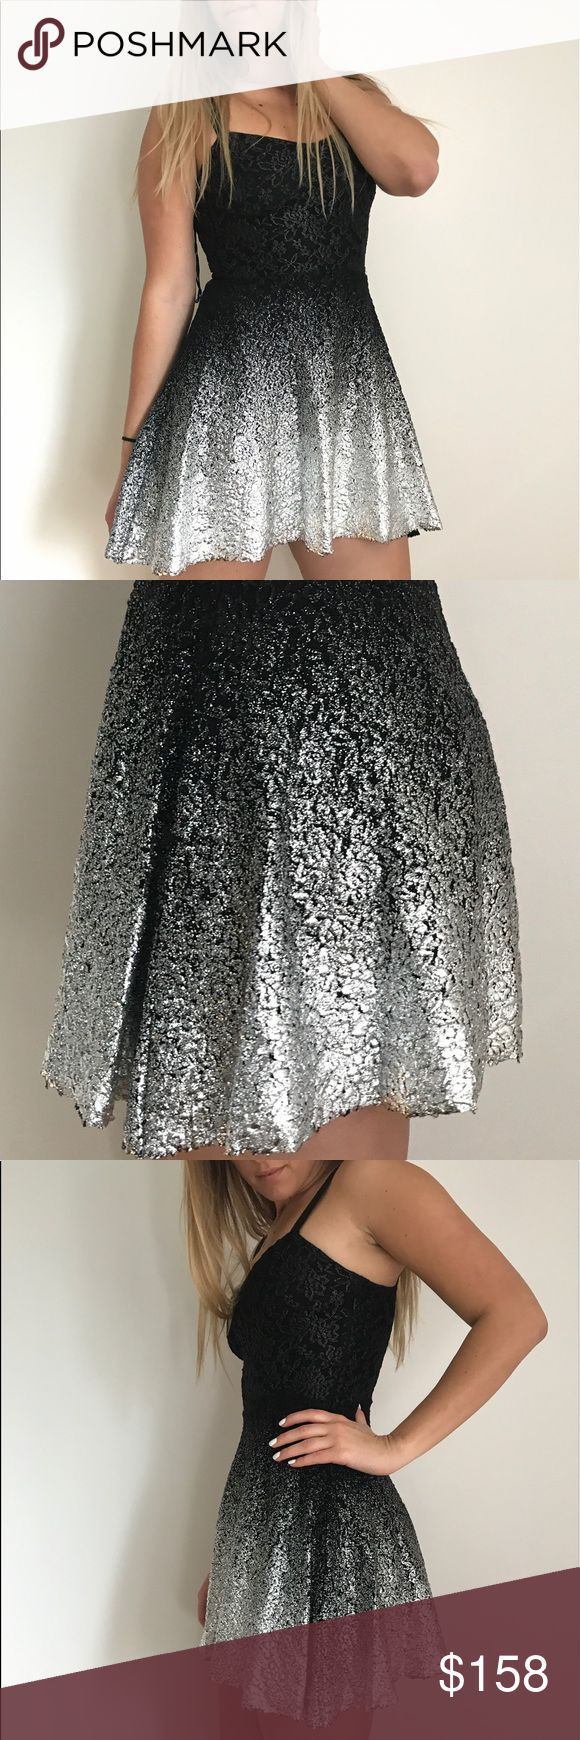 Free People Black Ombré Dress Black to silver ombre dress • Adjustable straps • Metallic silver foil around hem Free People Dresses Mini